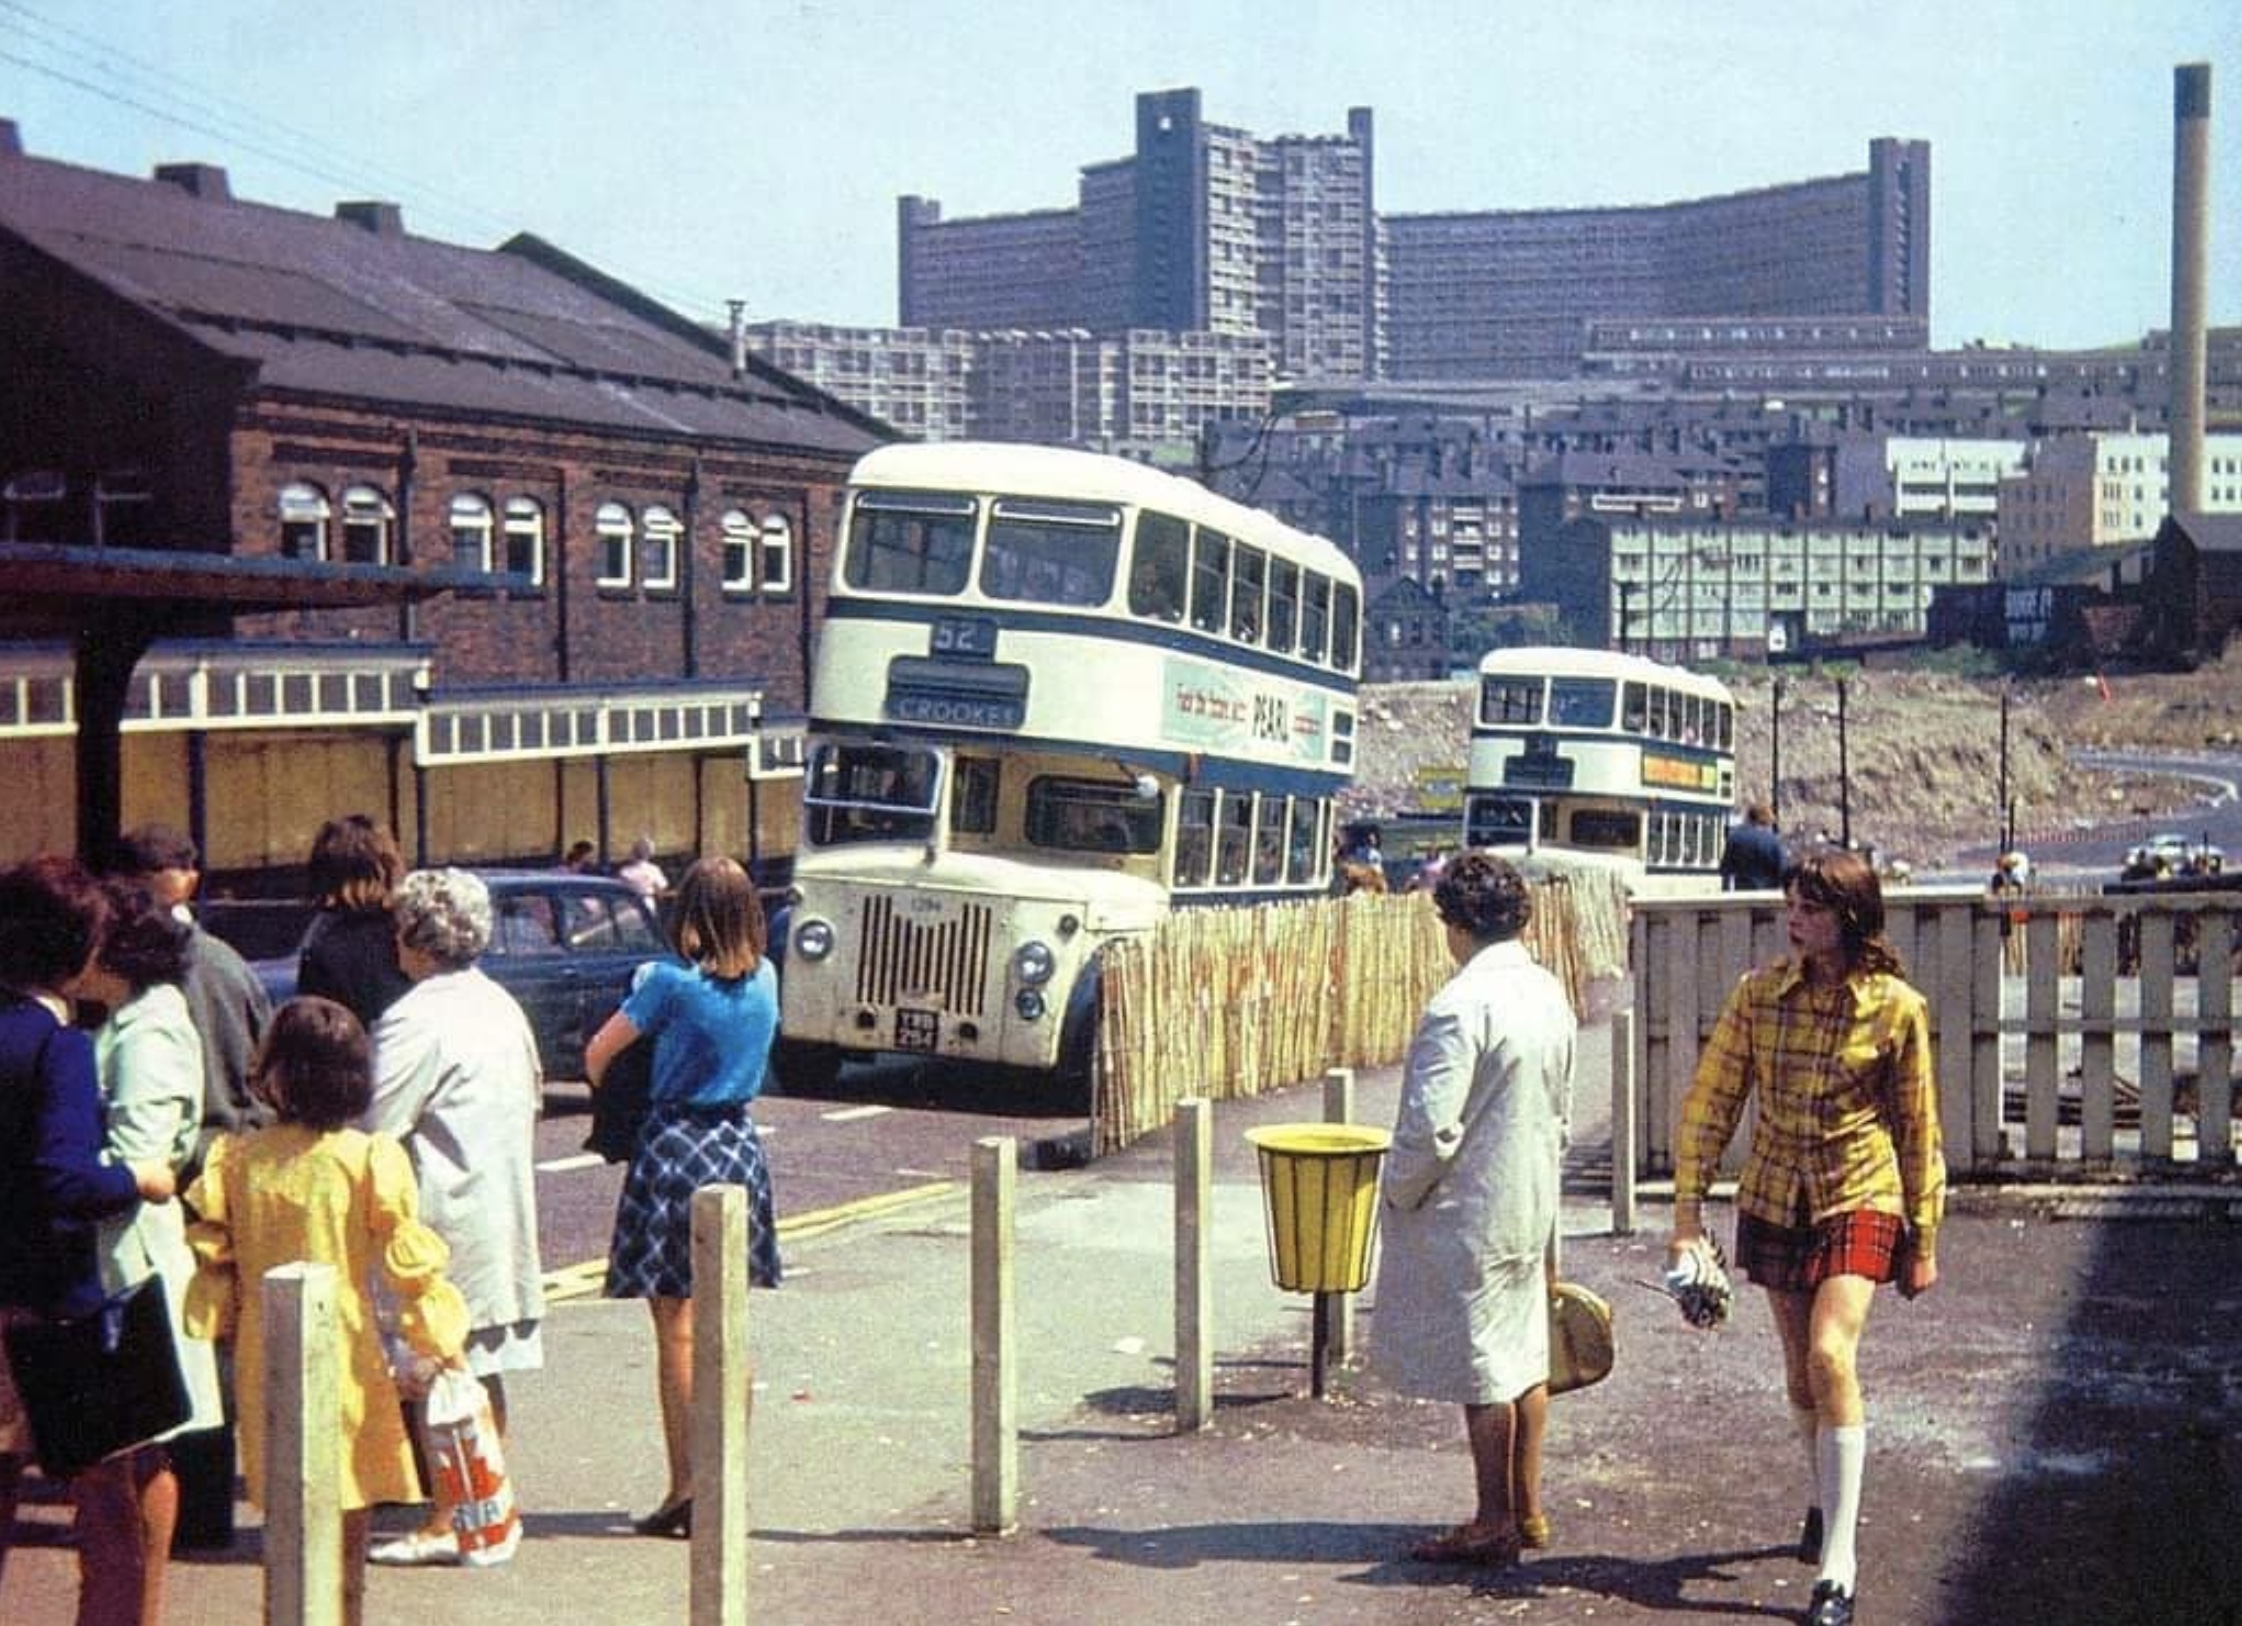 Does this scene look familiar to you?  (Sheffield in the 1970's)